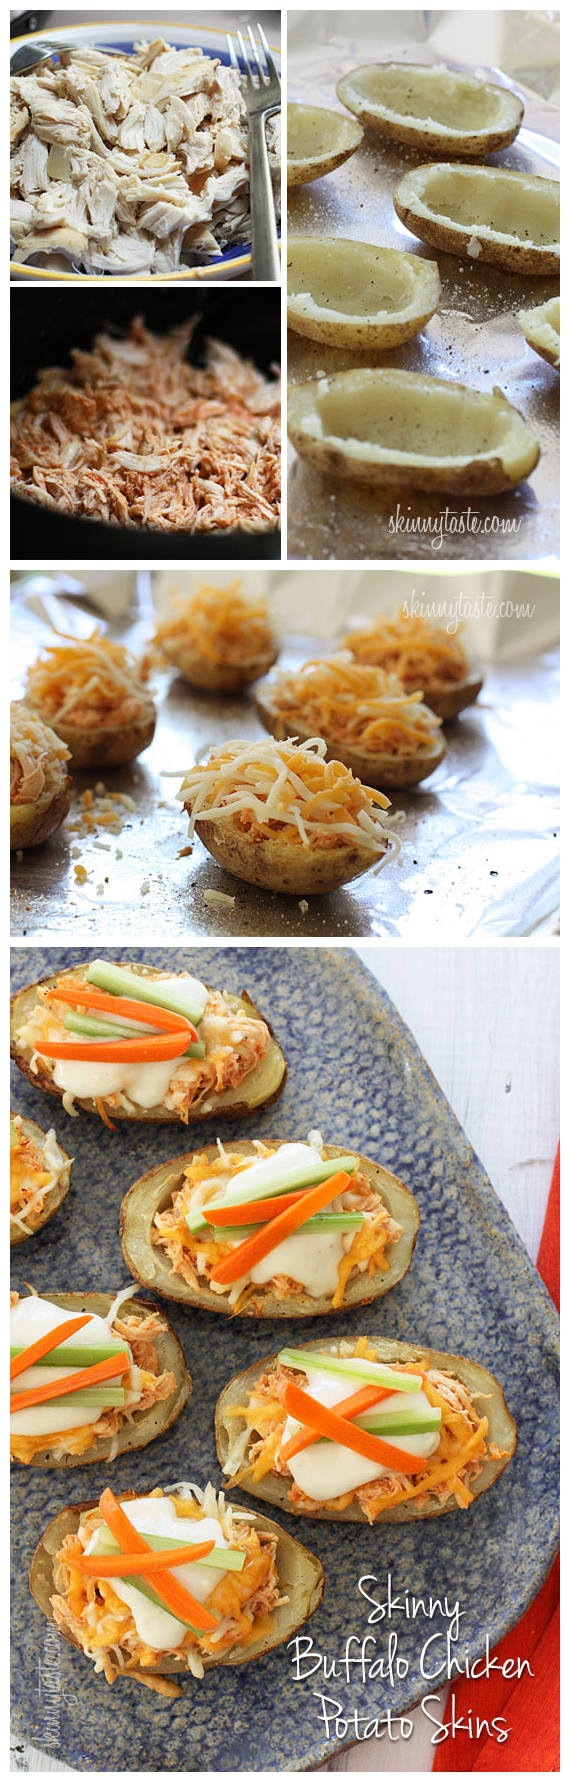 Skinny Buffalo Chicken Potato Skins | Recipe